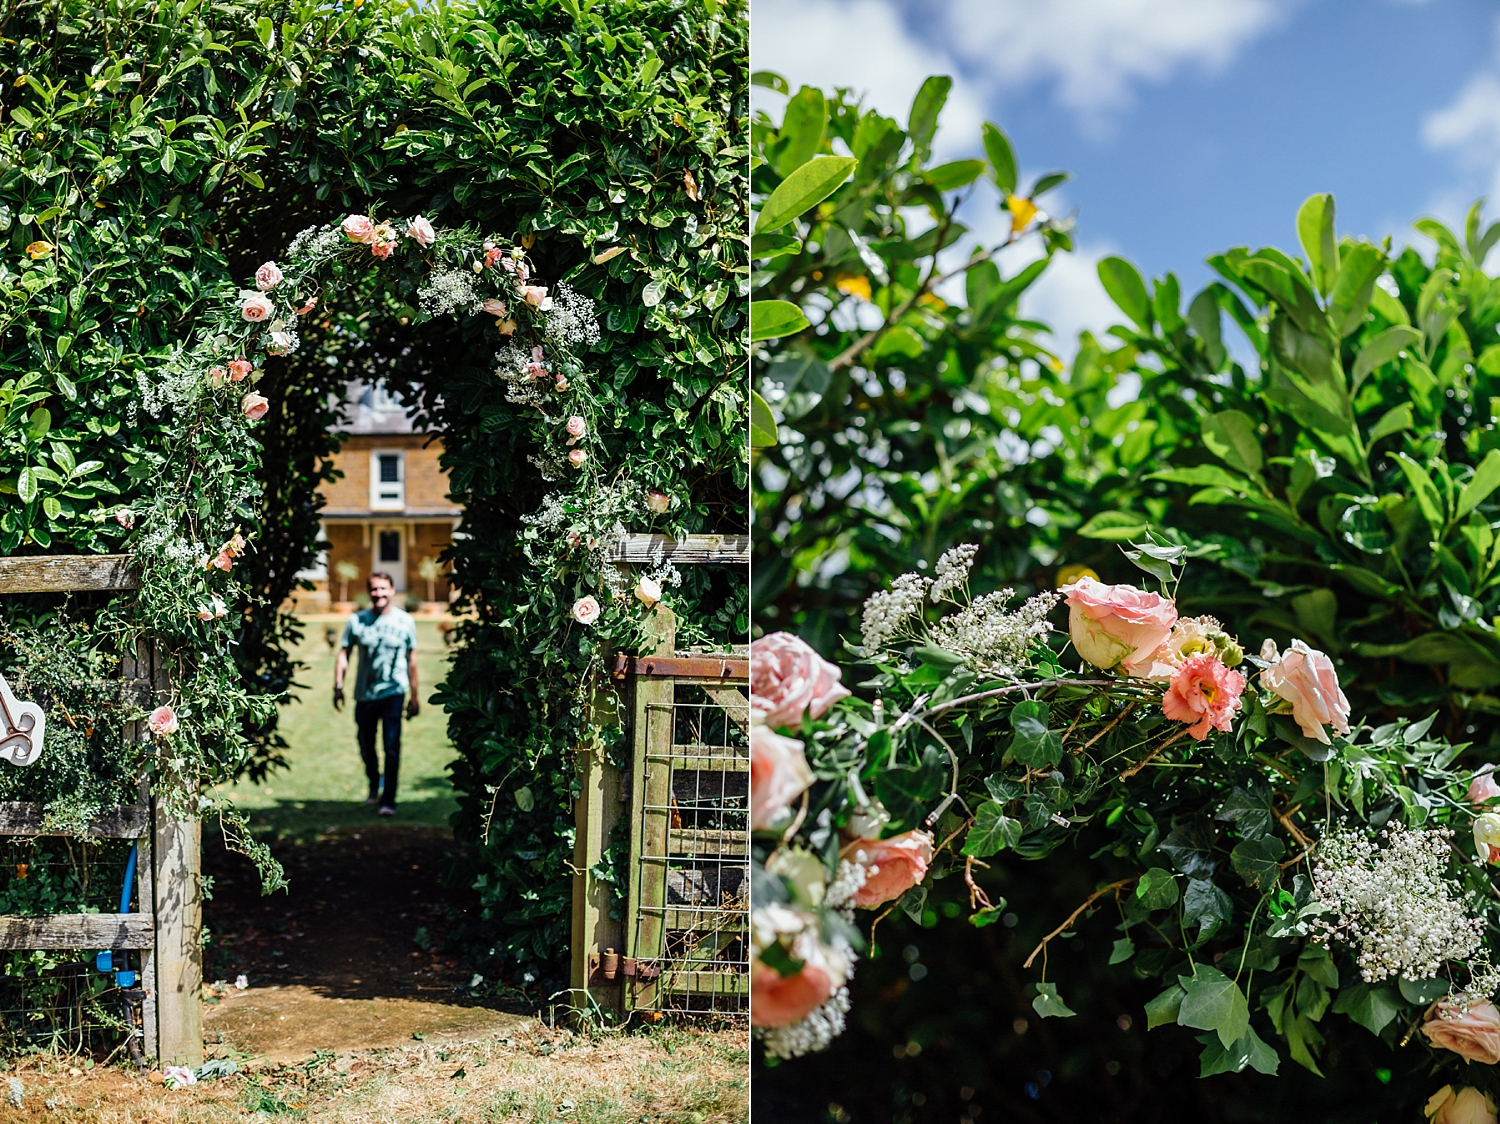 alexvictor-blog-natural-fun-relaxed-documentary-charlotte-jopling-wedding-photography-northamptonshire-home-garden-country-summer-1.jpg